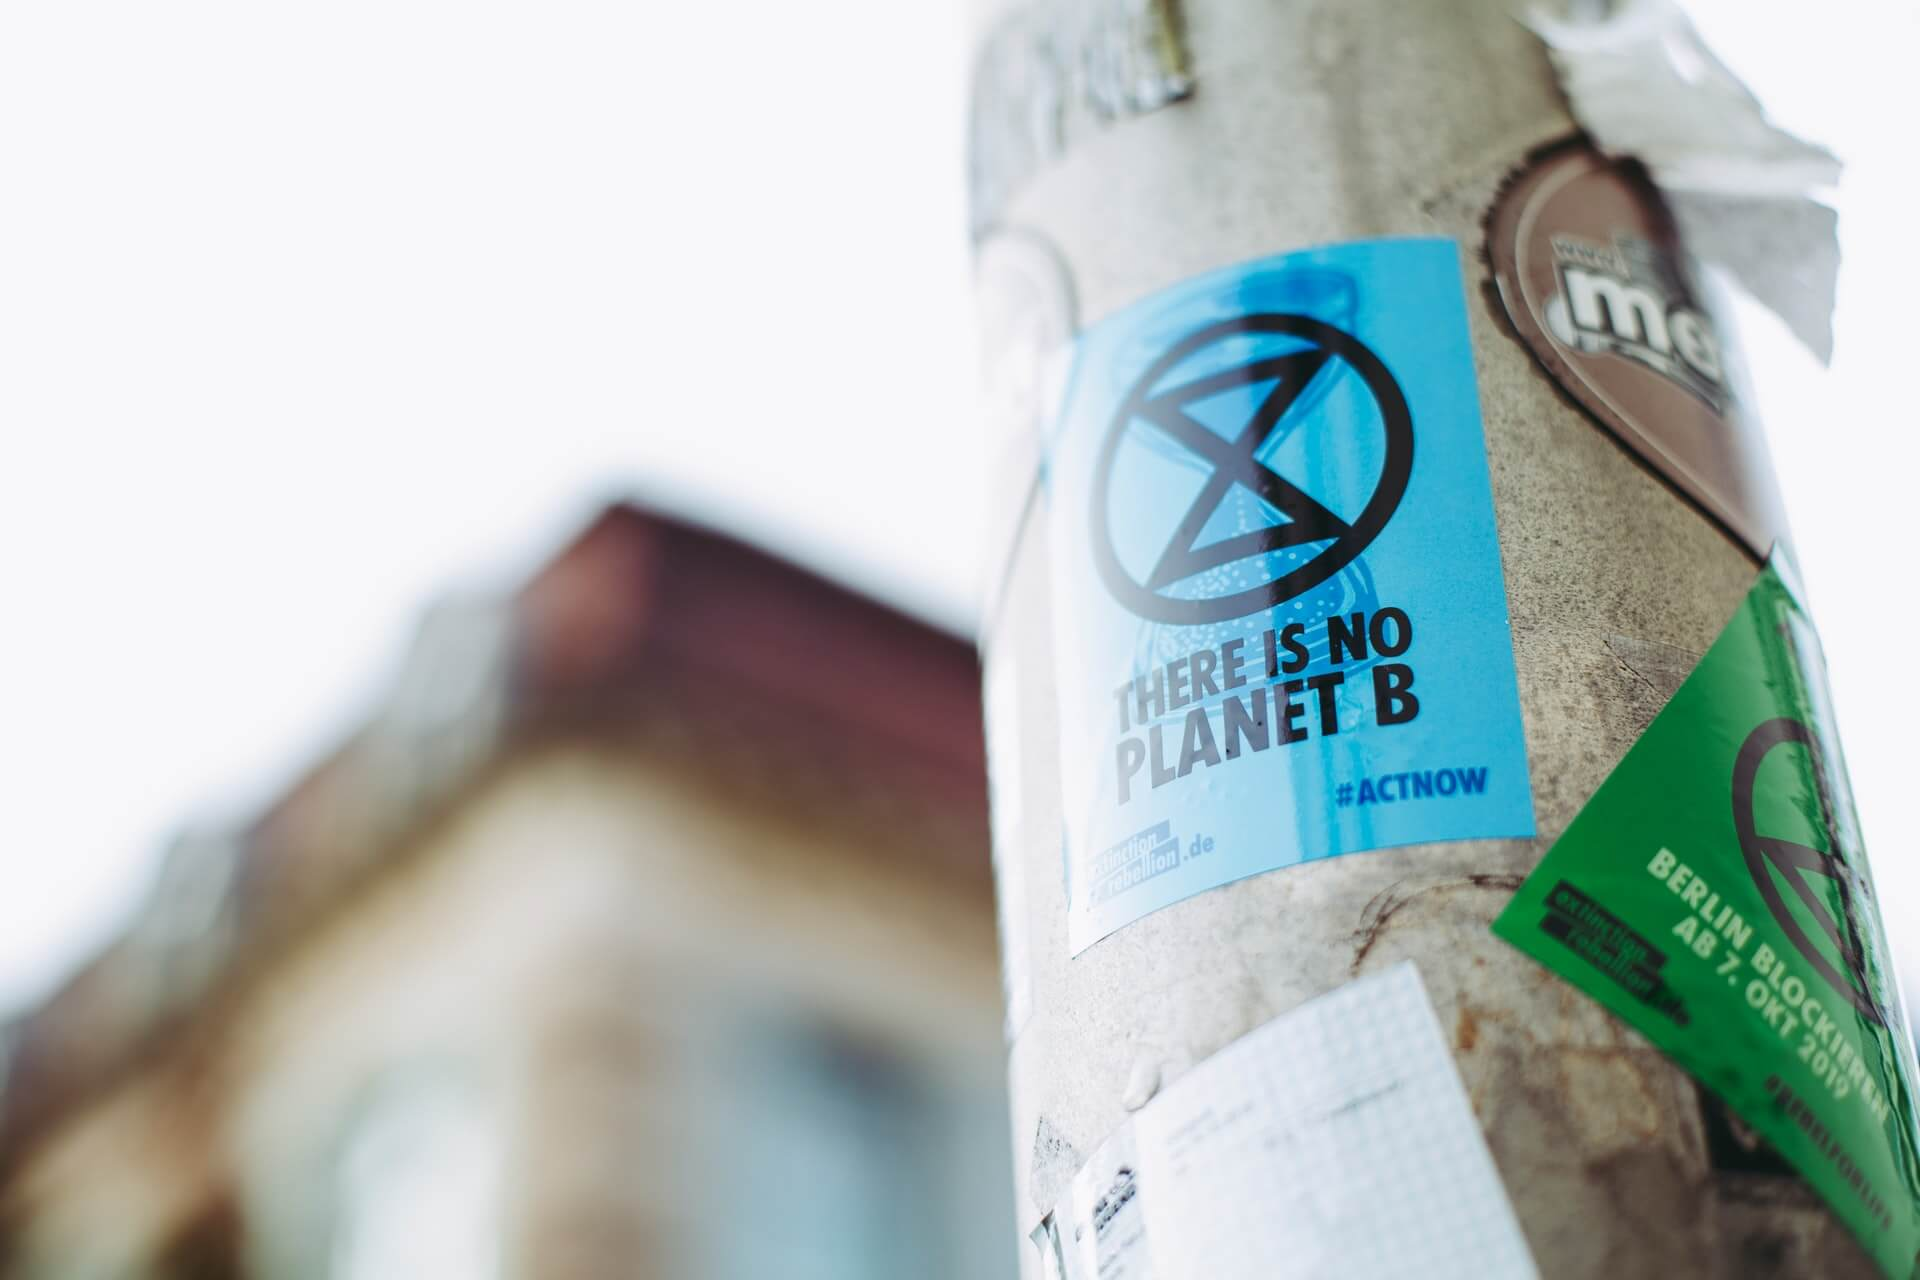 """A """"There Is No Planet B"""" sign at a political demonstration in Germany"""